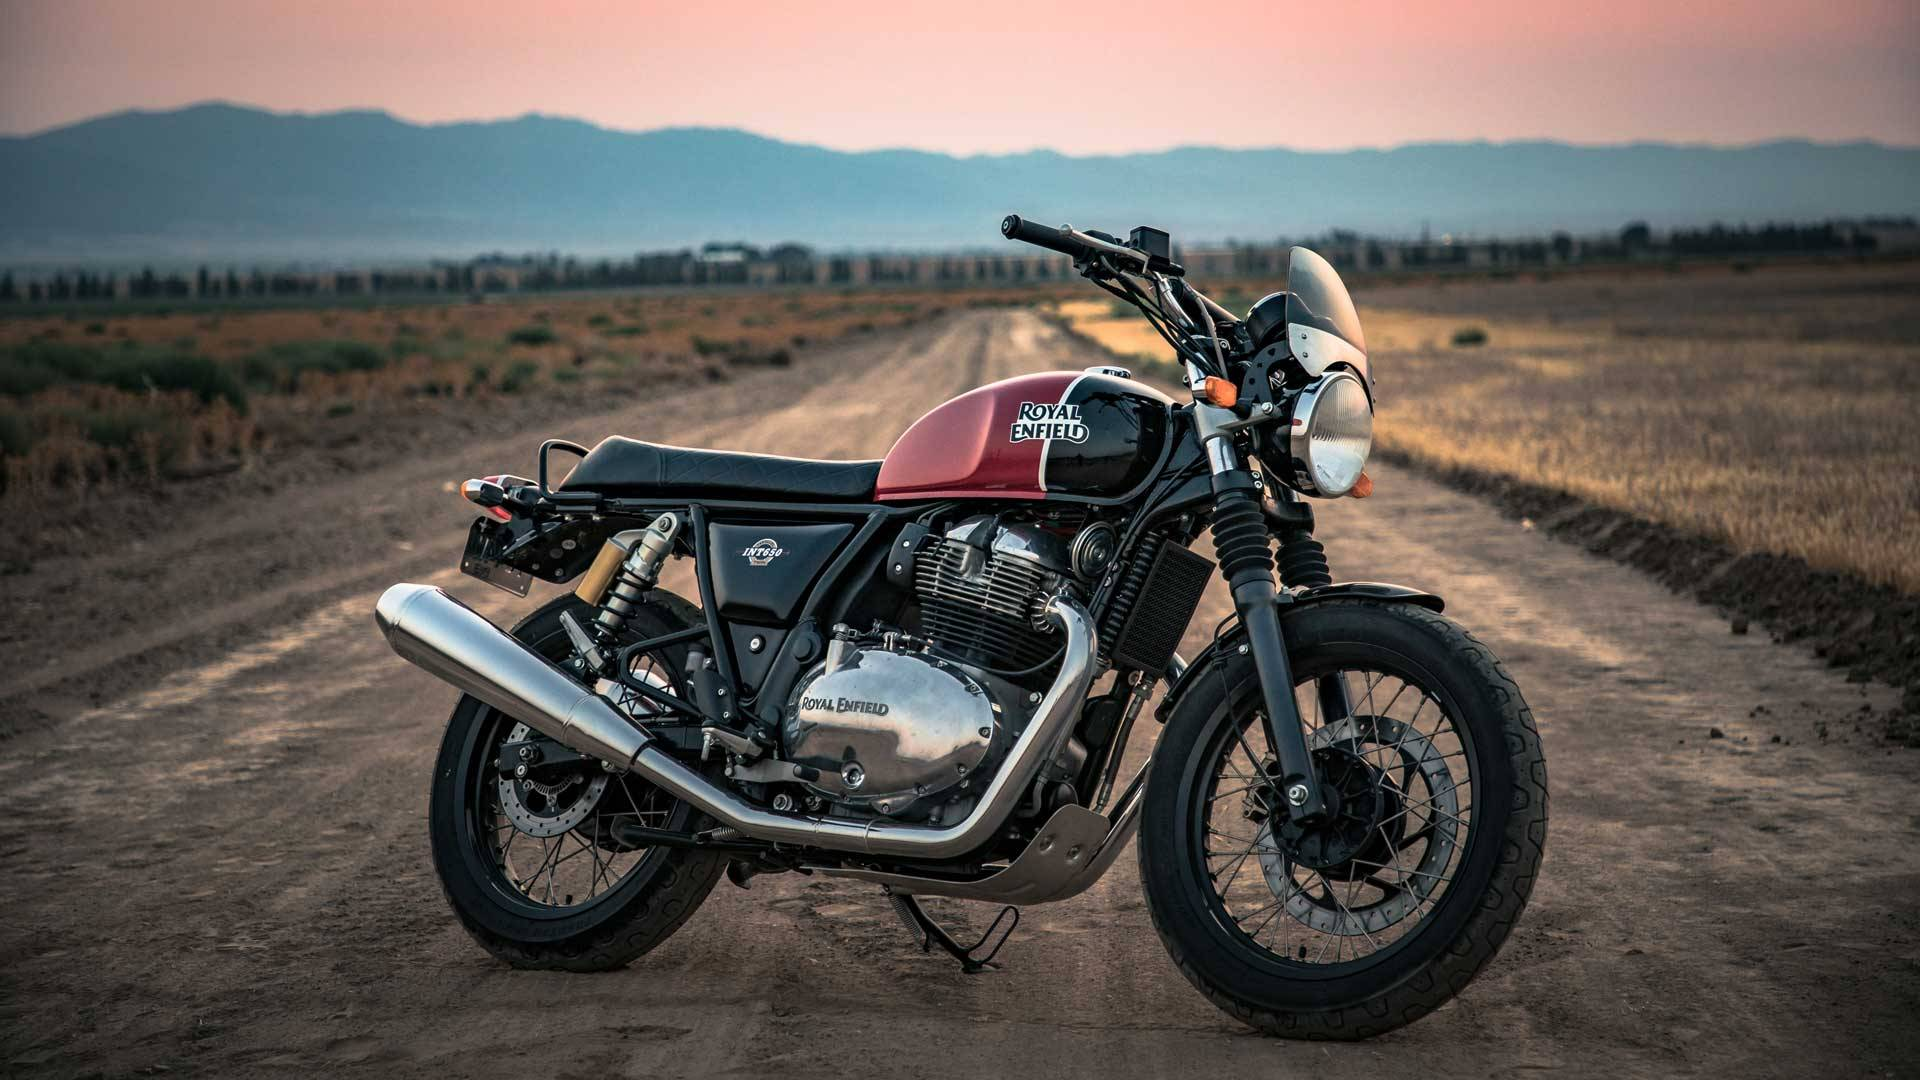 Royal Enfield 650 Twins Force Harley to Drop Prices by 30%